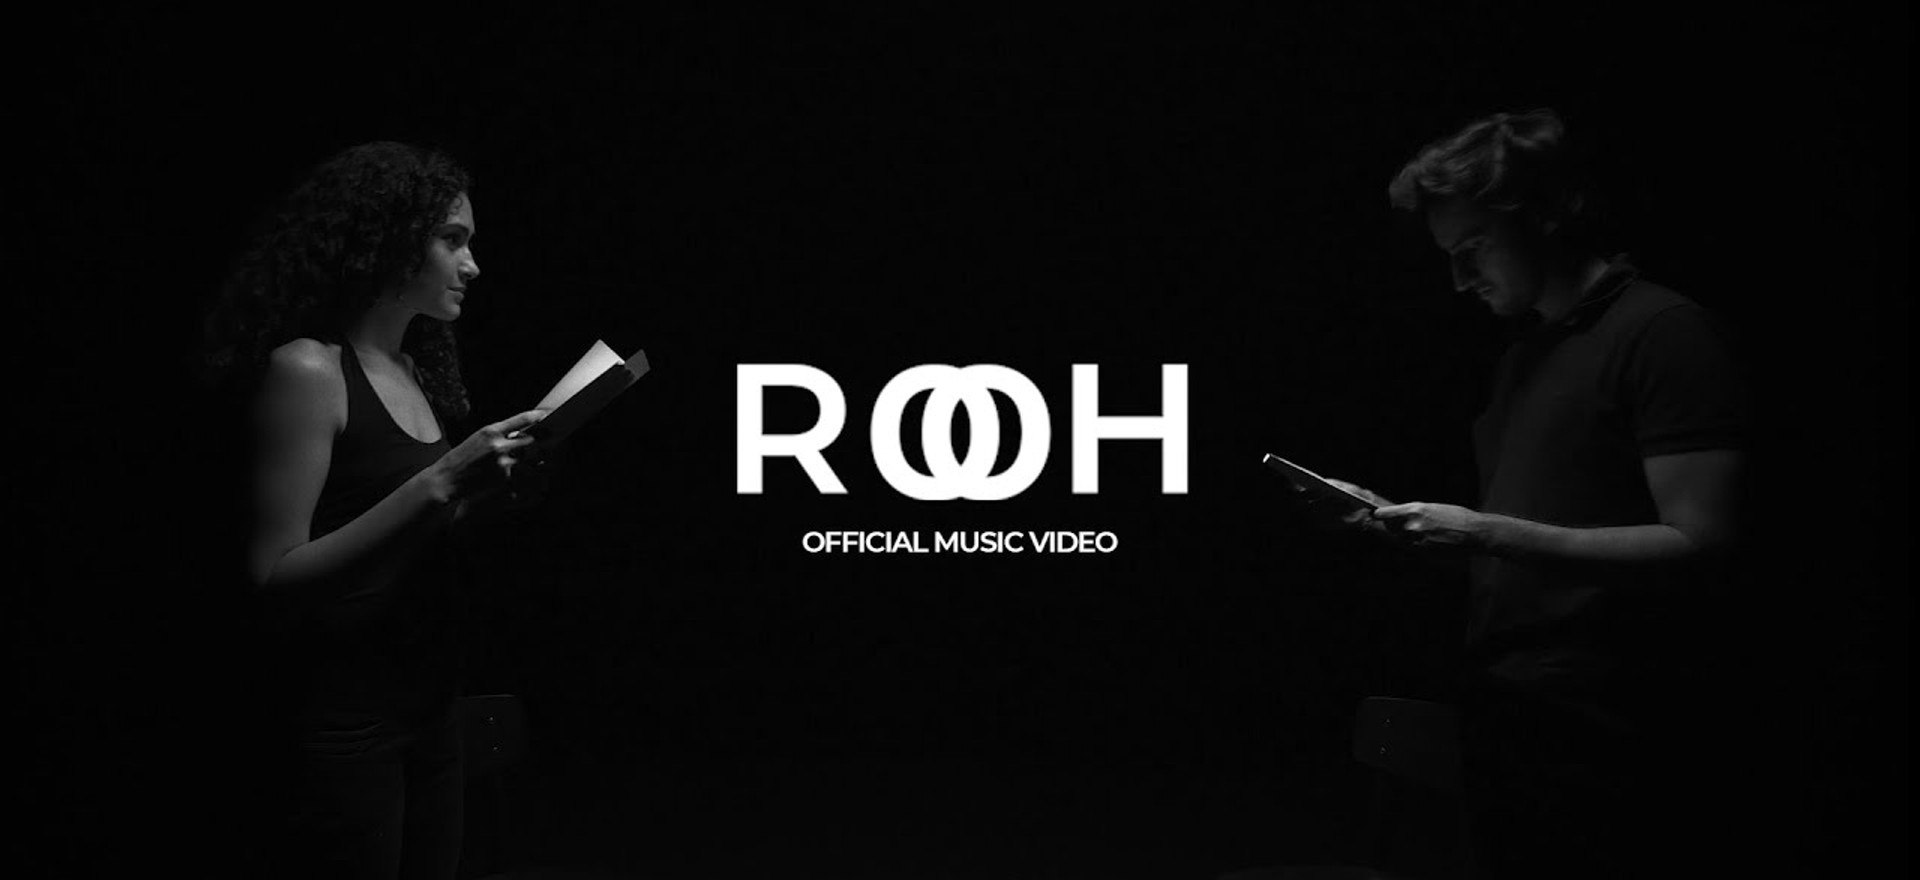 aswekeepsearching - ROOH (Official Music Video)